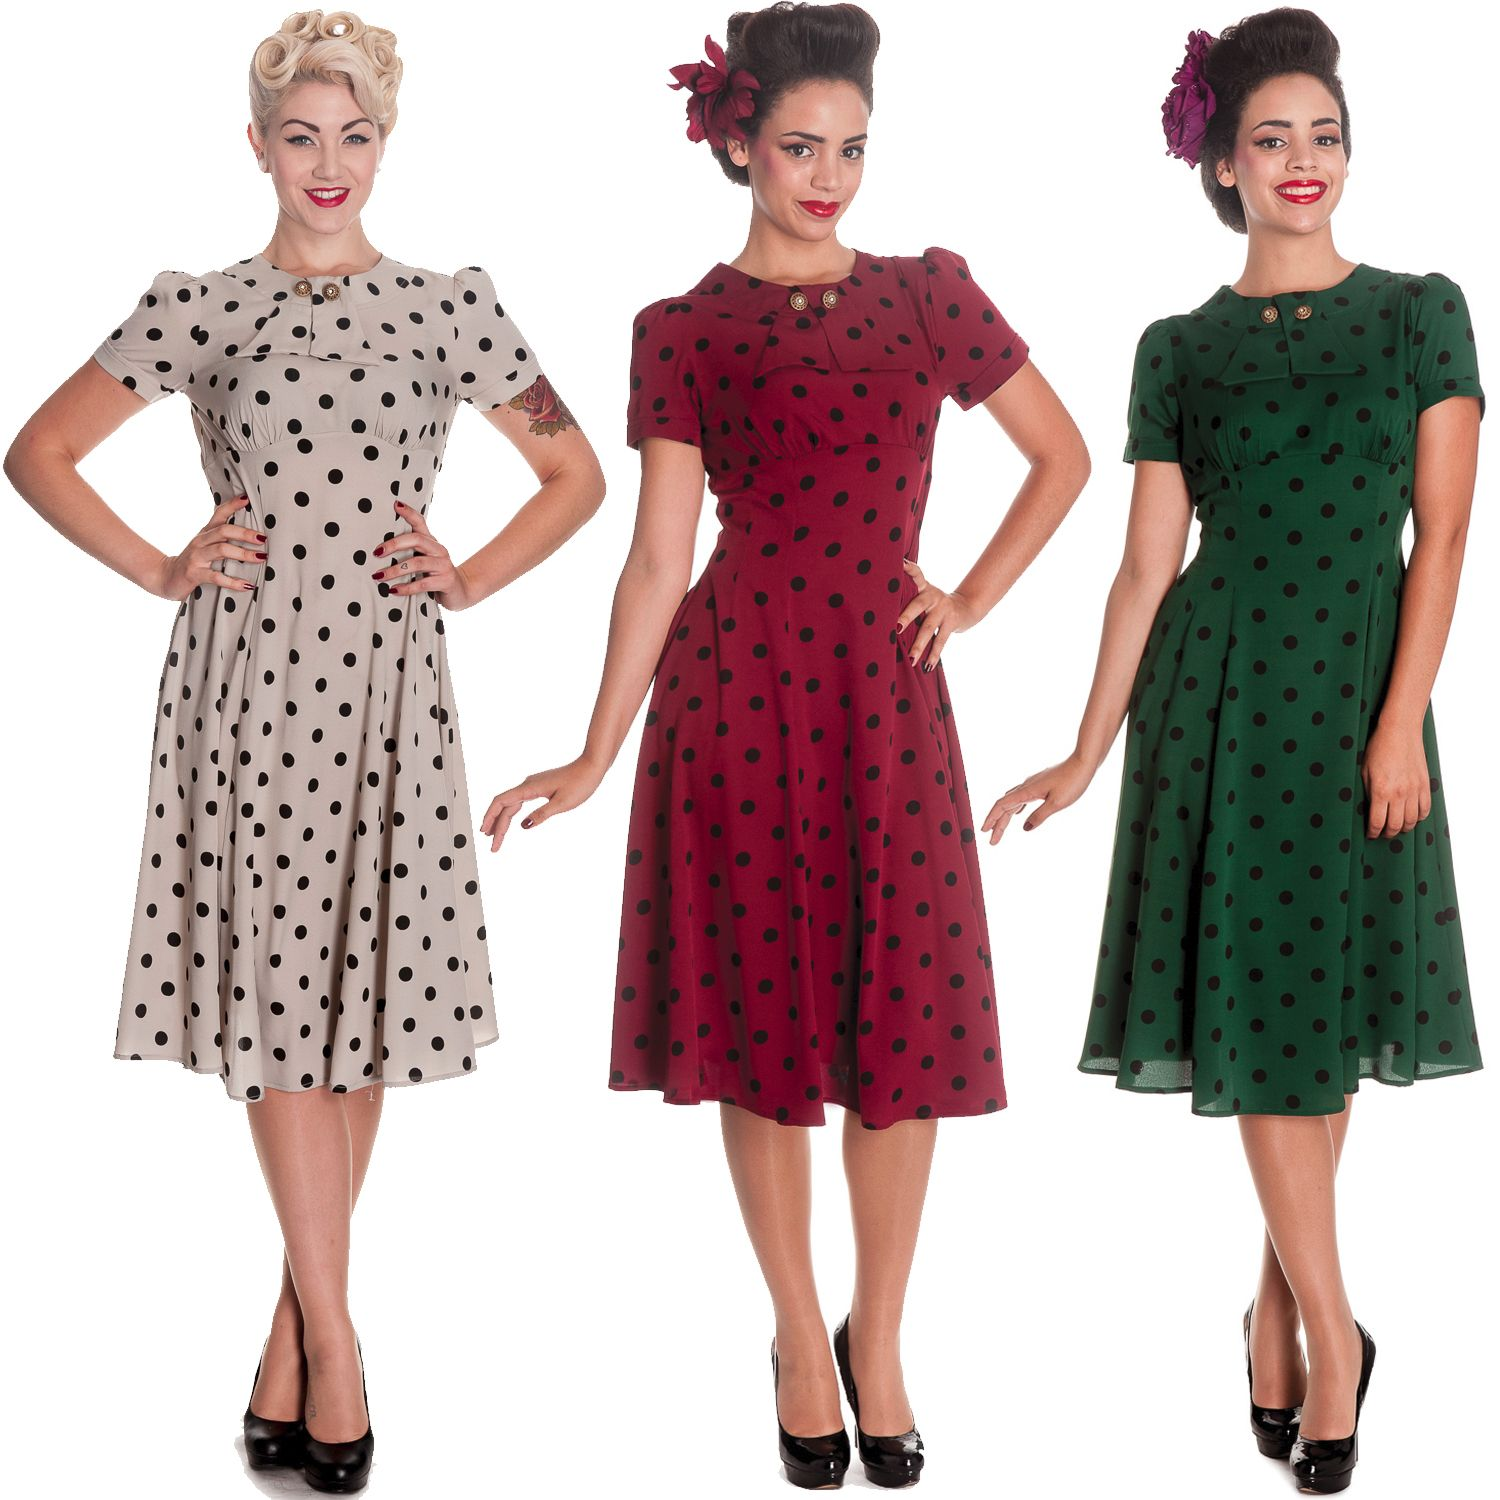 1940's fashion dresses - Buscar con Google | moda años 30 ...